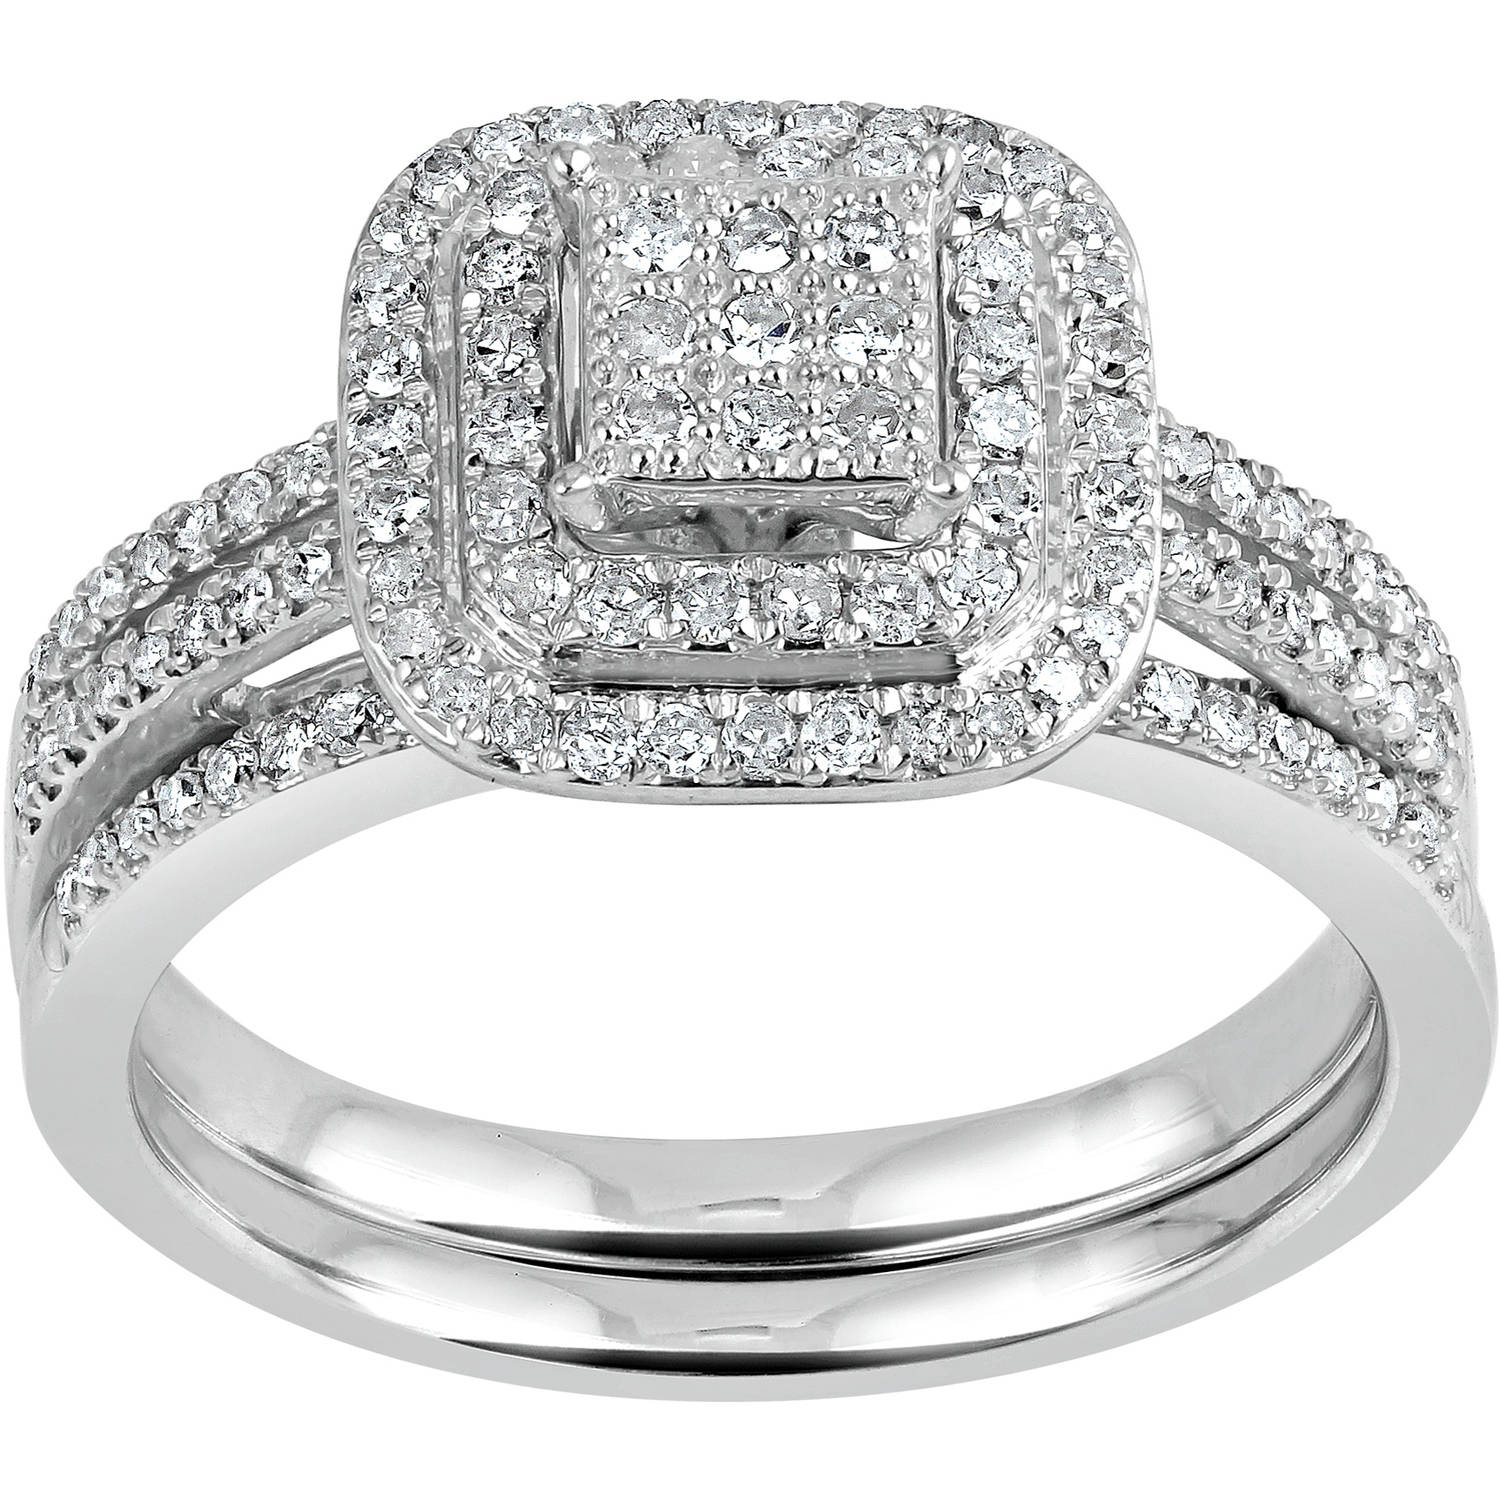 Forever Bride 1 2 Carat T.W. Diamond Cluster Square Frame Sterling Silver Bridal Set by TARA JEWELS LIMITED